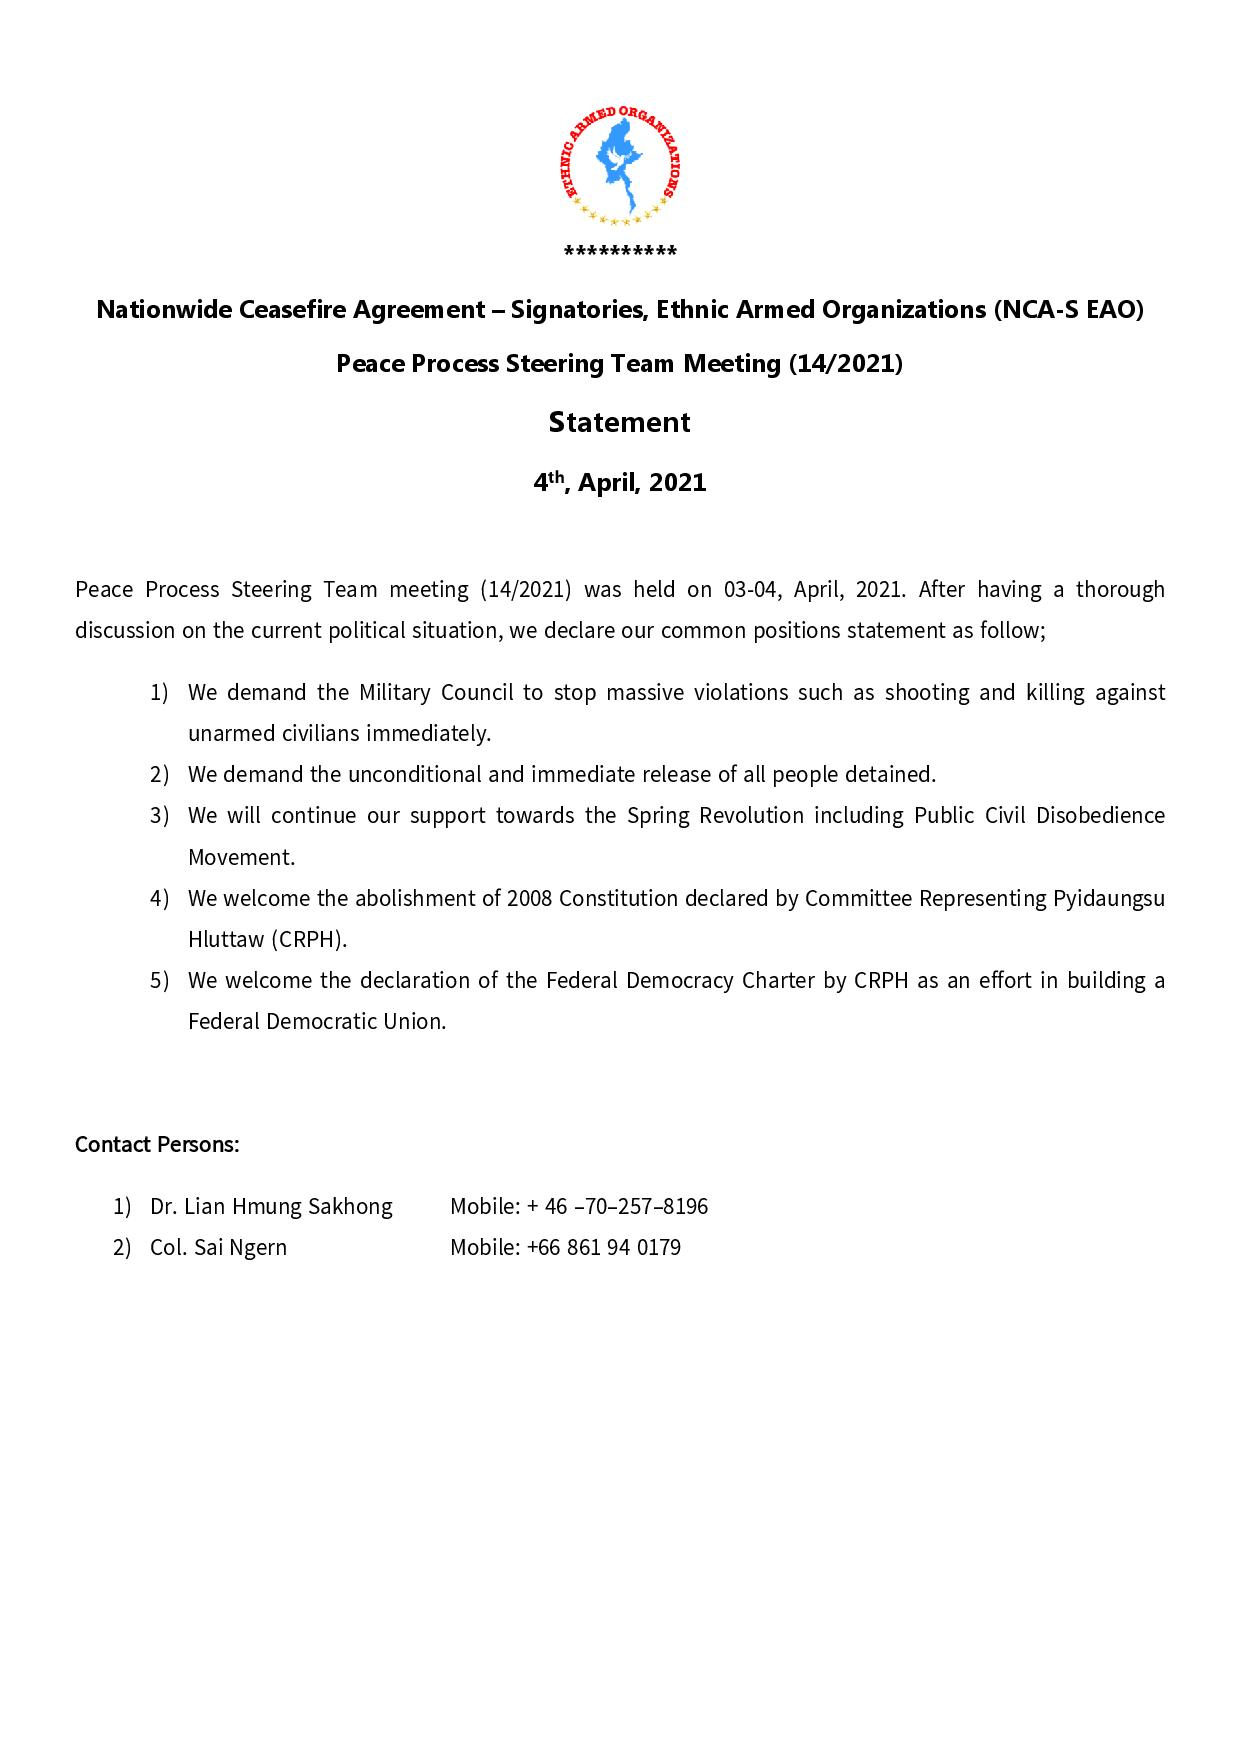 The Statement of Peace Process Steering Team (PPST) Meeting (14/ 2021)